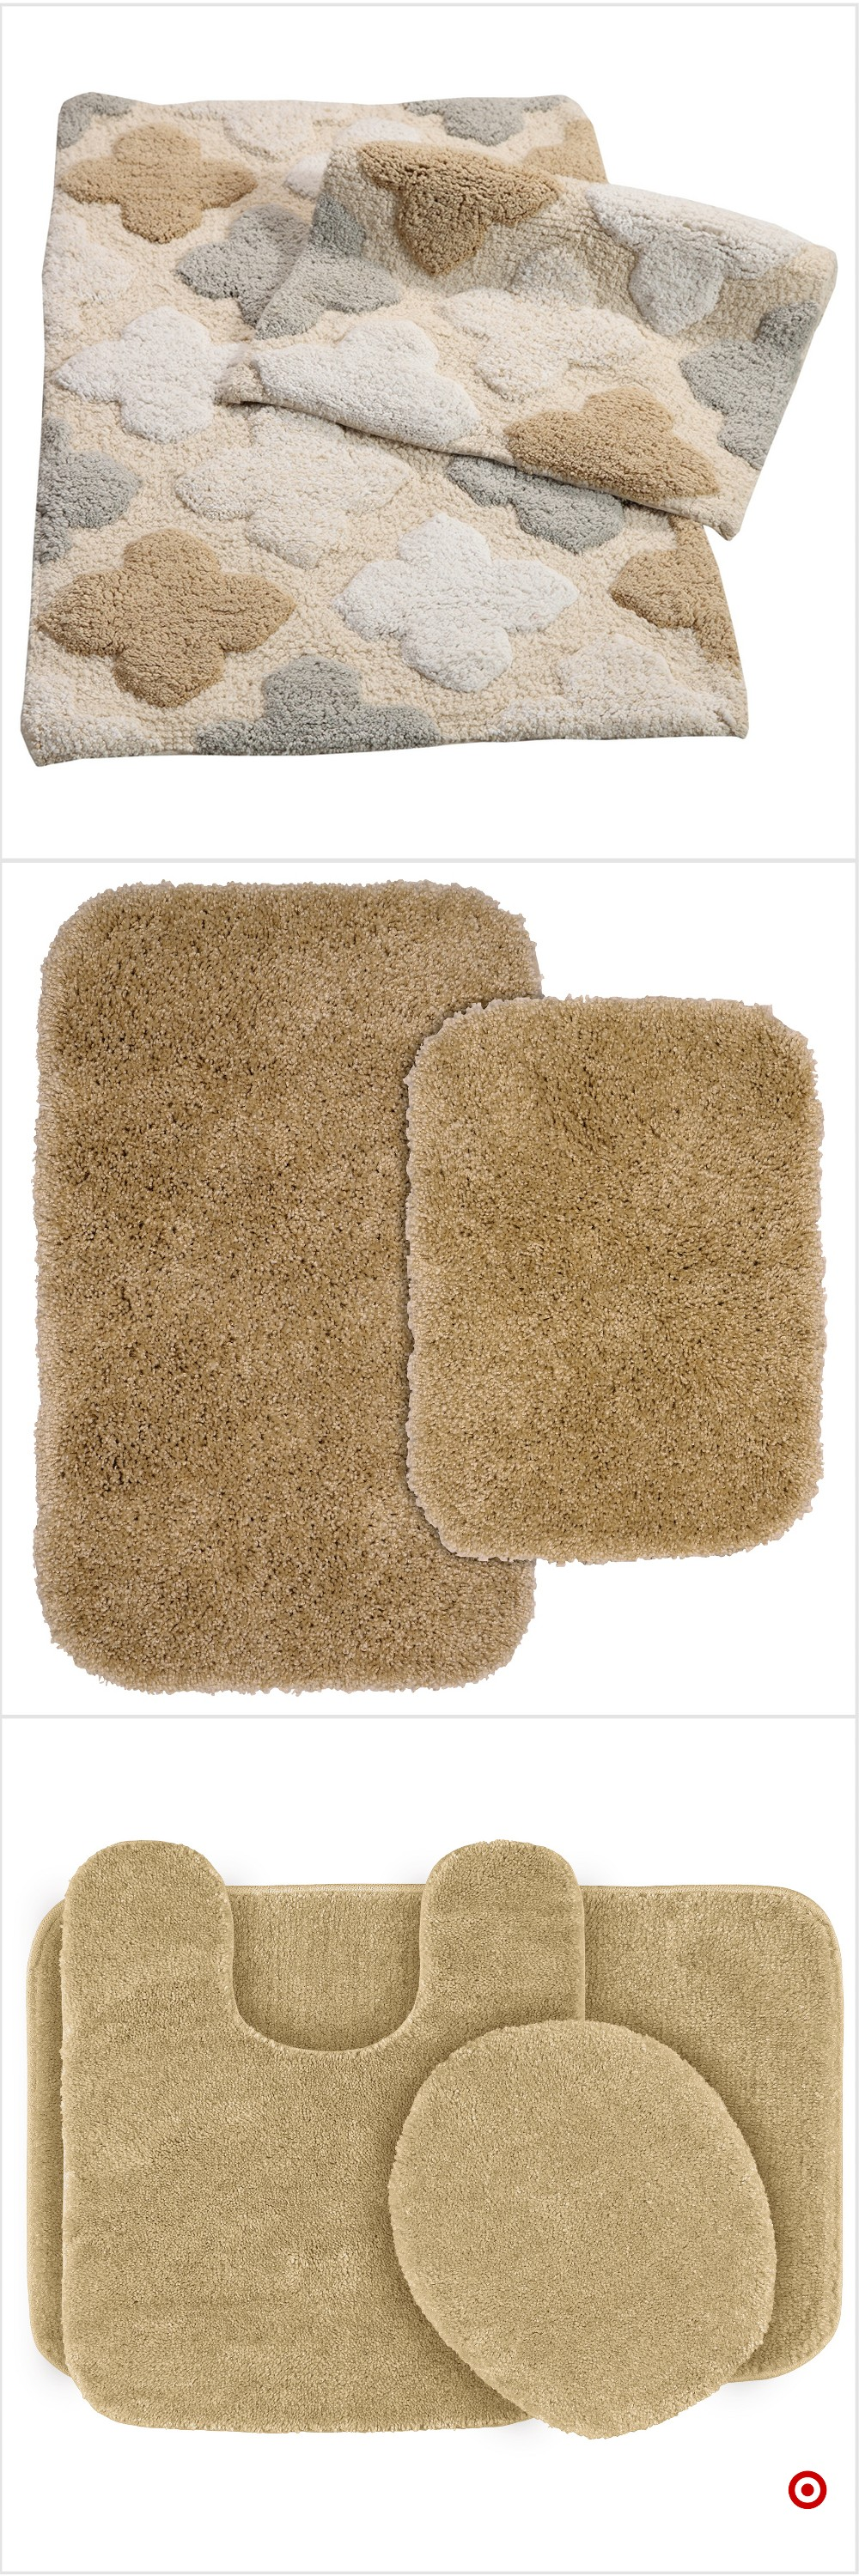 Shop Target for bath rug set you will love at great low ...